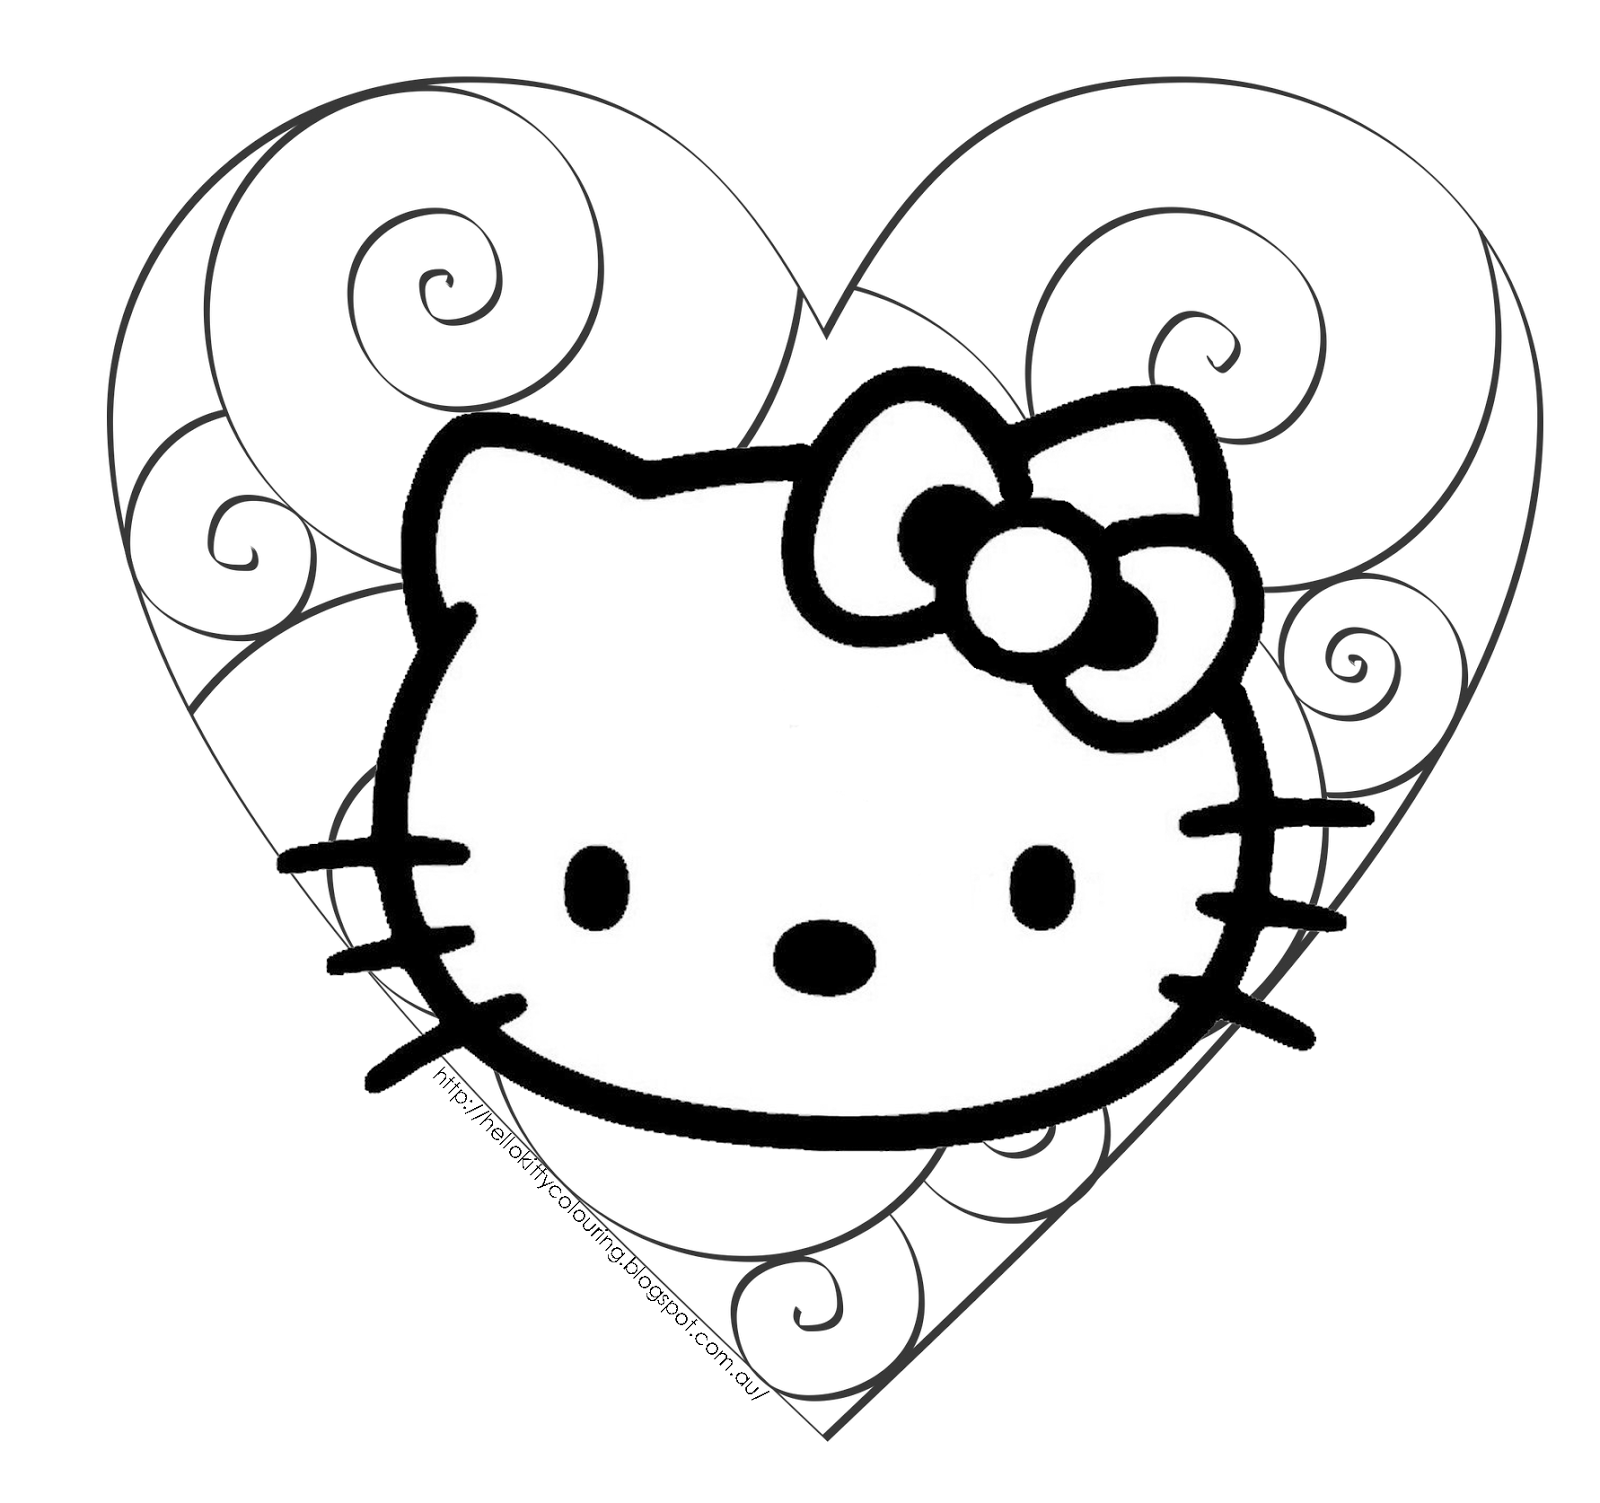 It's just a picture of Geeky Hello Kitty Coloring Images